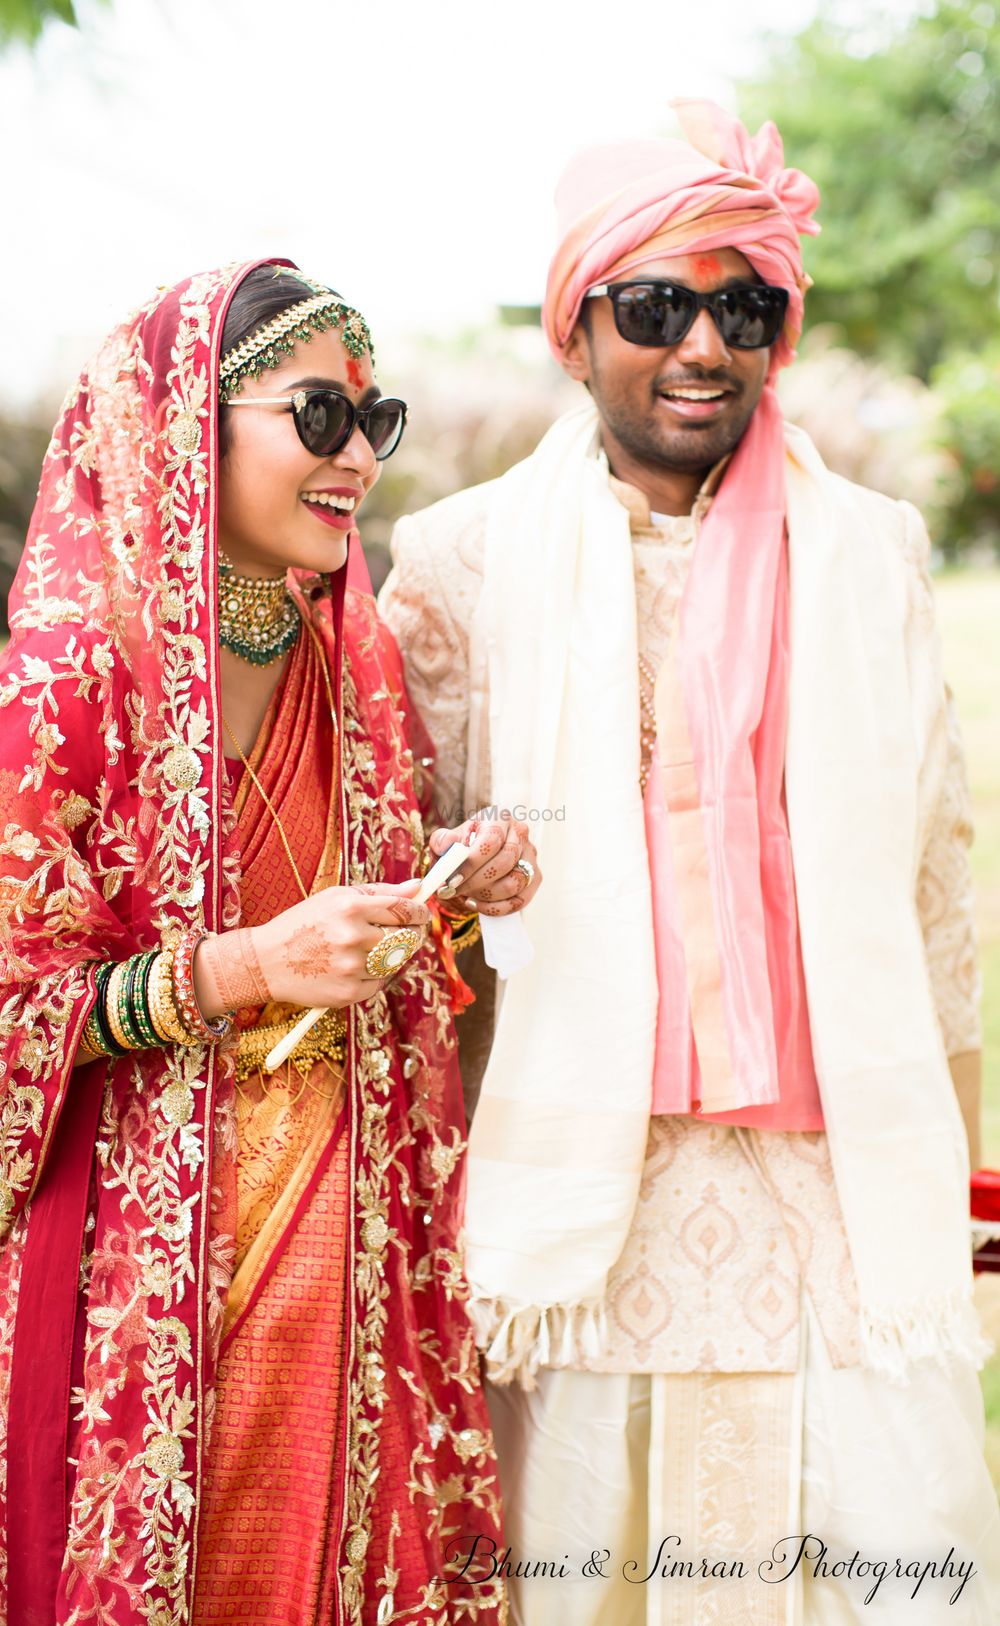 Photo of Cool couple shot wearing sunglasses for day wedding